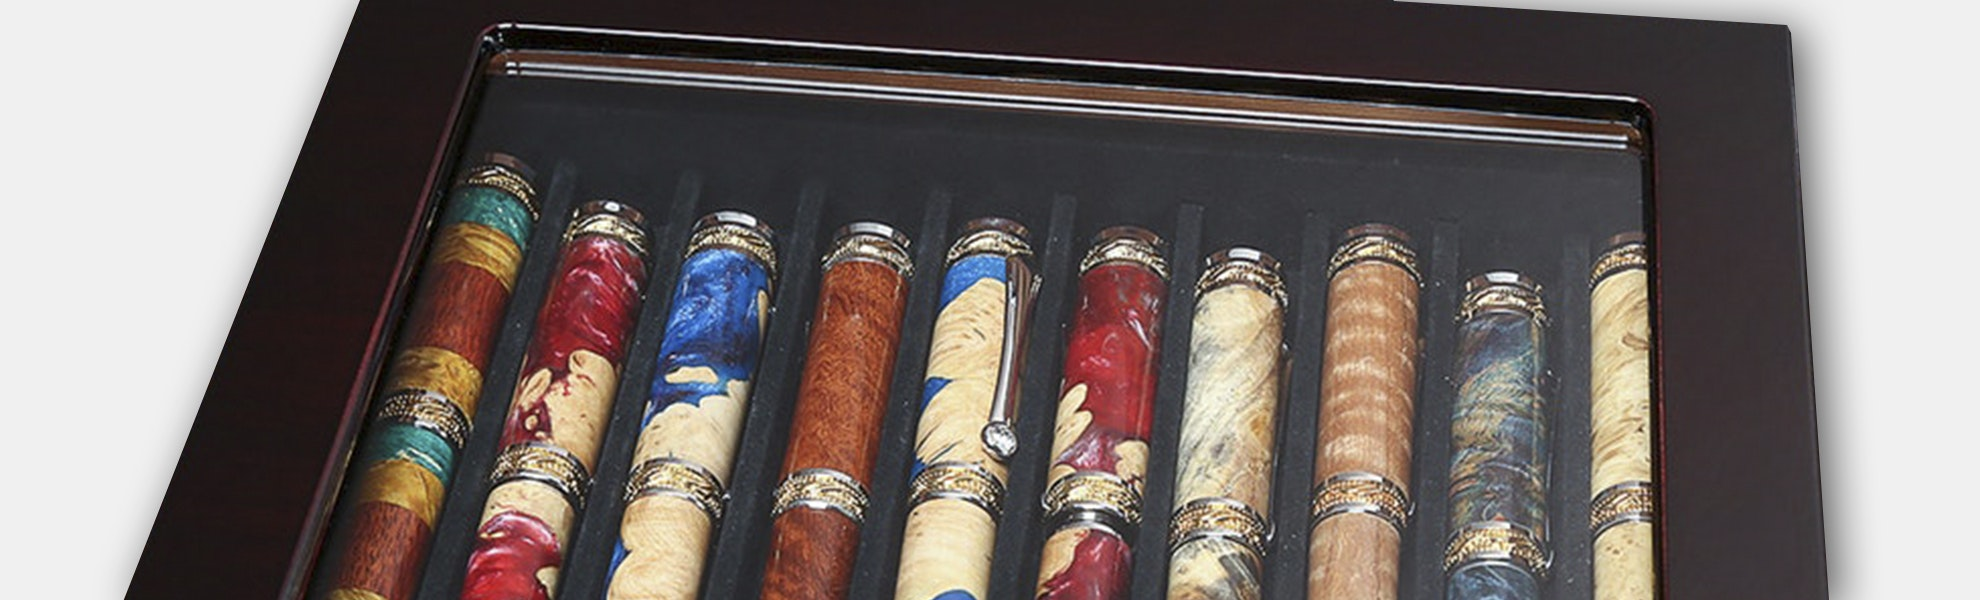 Lanier Piano-Lacquer Display Case for 10 Pens